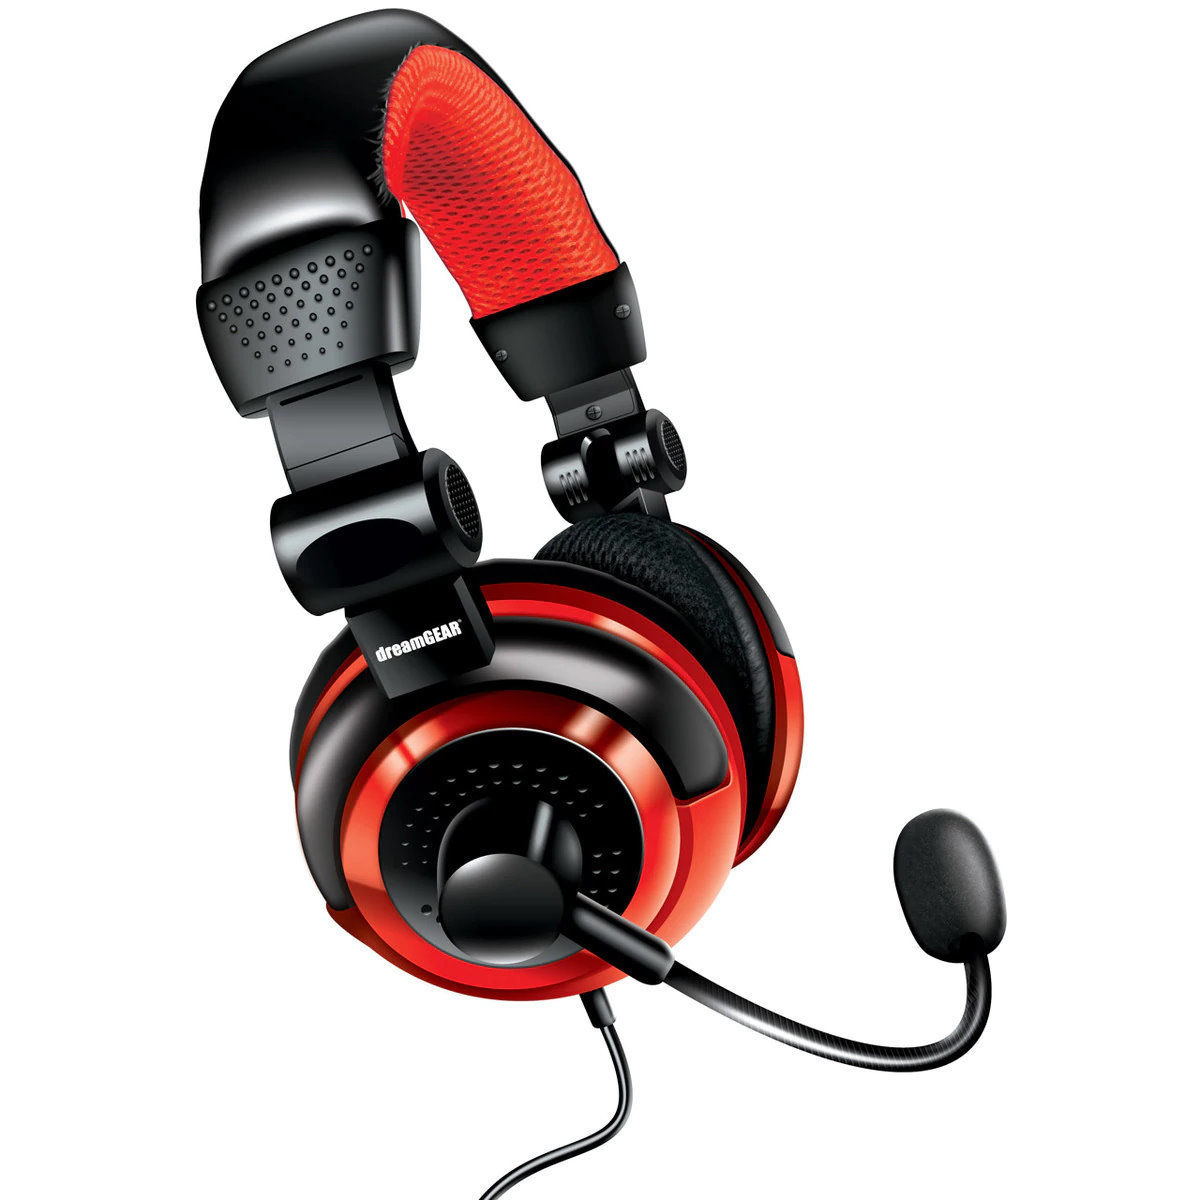 Picture of dreamGEAR Wired Universal Elite Headset - Black/Red